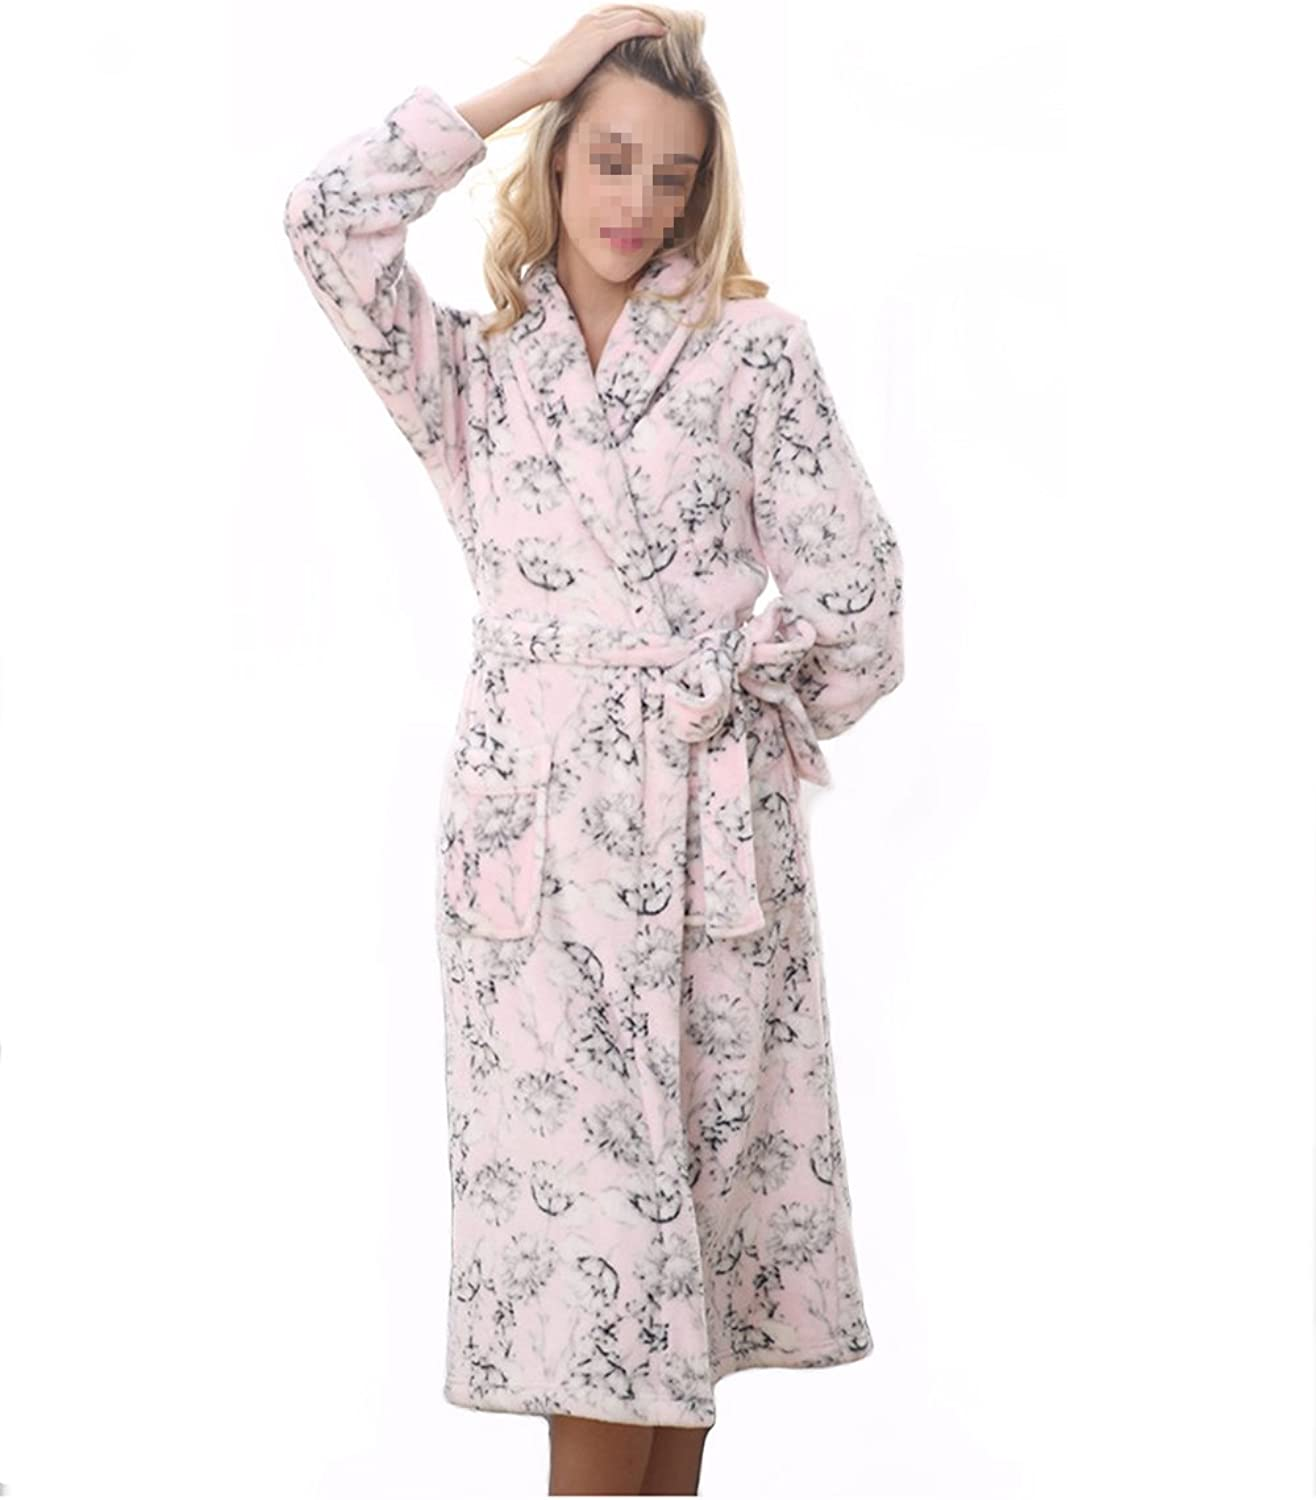 Leeh's Women Bathrobe Nightgown Pink Flannel Floral Long Home Wear for Winter and Autumn